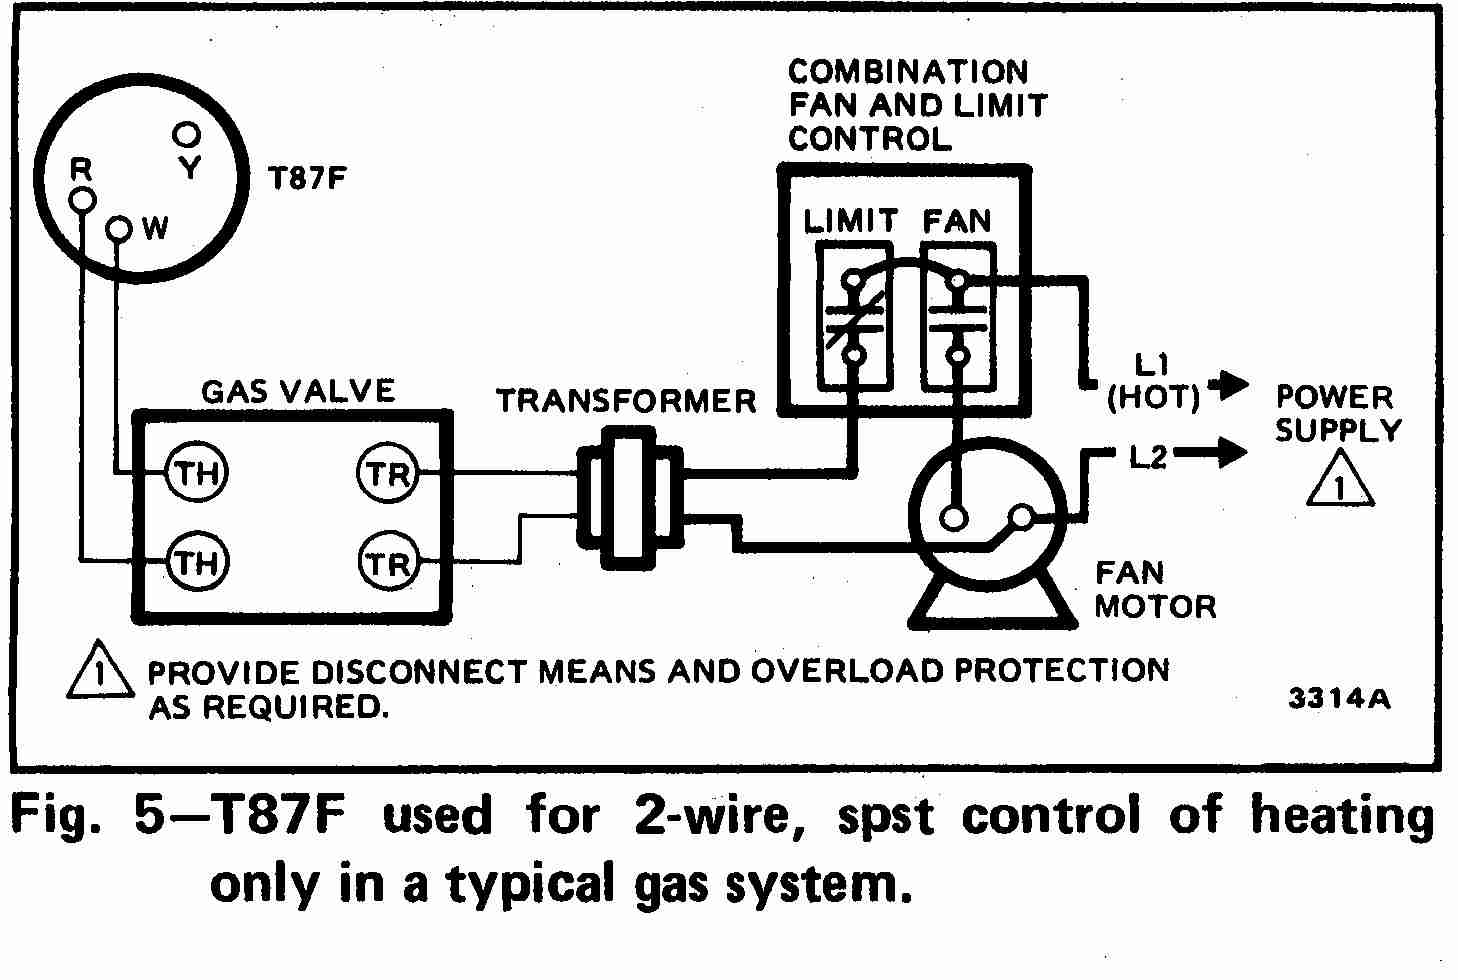 TT_T87F_0002_2Wg_DJF guide to wiring connections for room thermostats air conditioner thermostat wiring diagram at webbmarketing.co